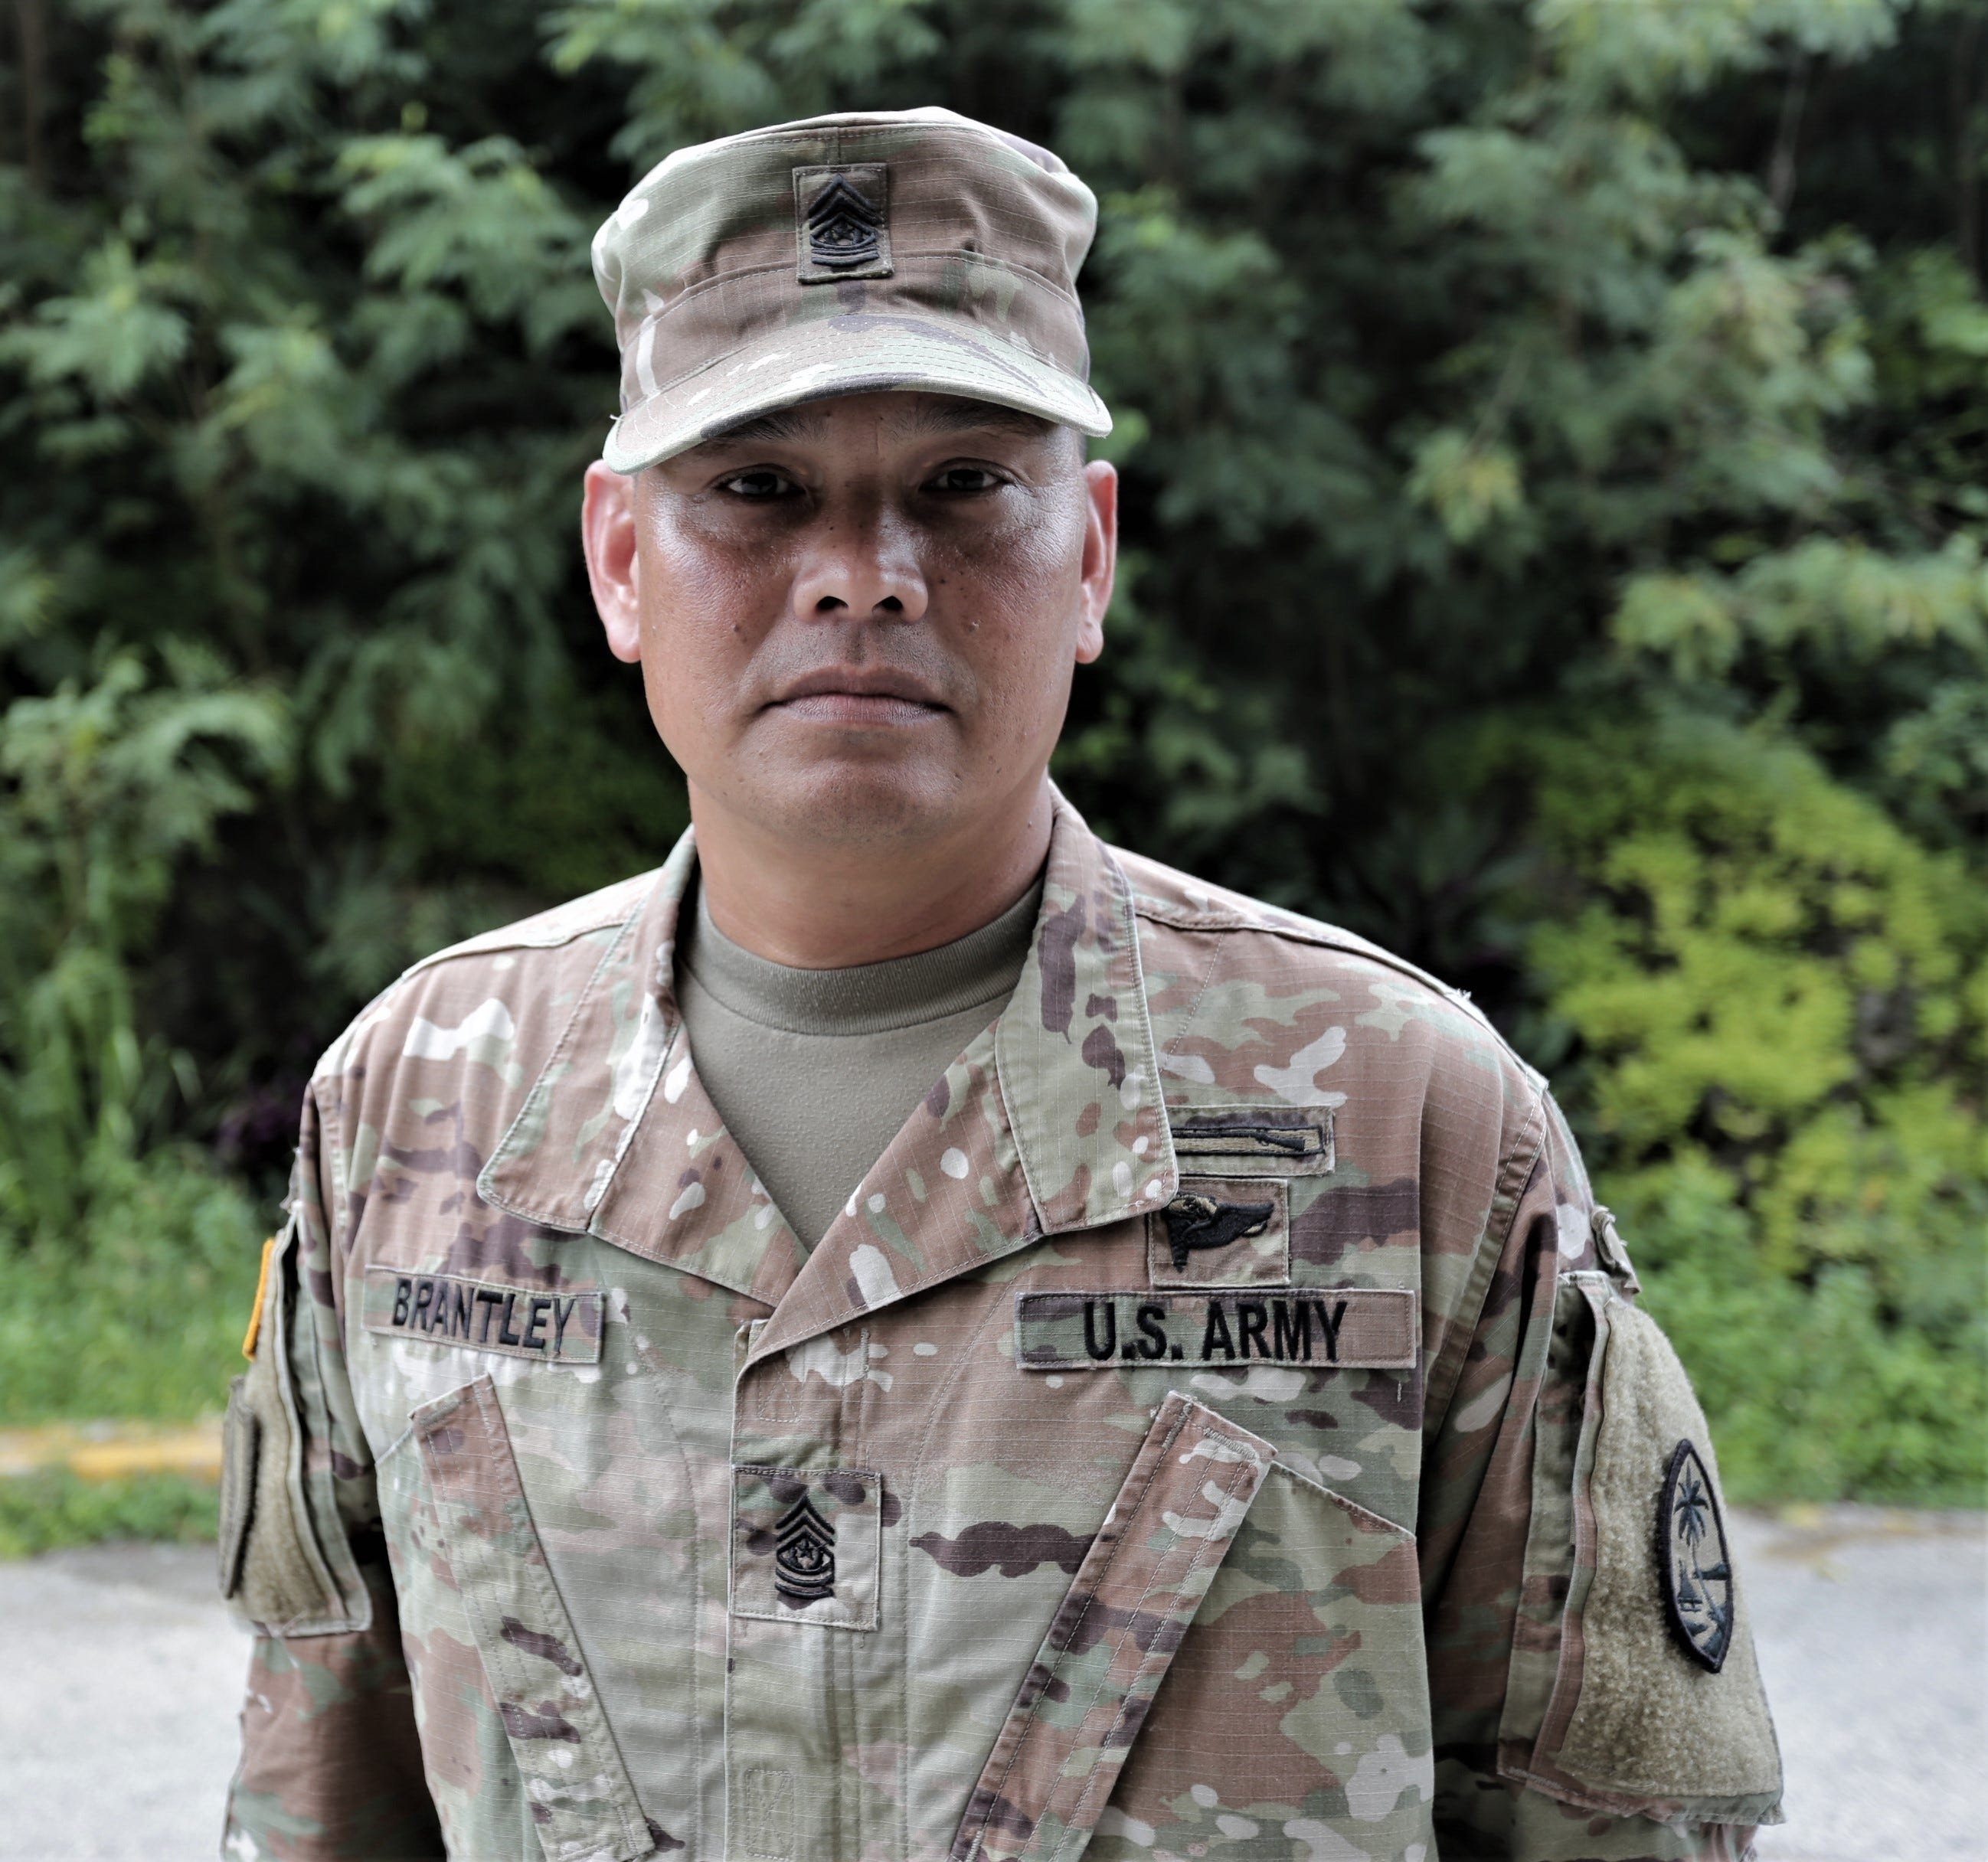 Command Sgt. Maj. Ron Brantley of the Guam National Guard has been accepted to the exclusive U.S. Army Sergeants Major Academy Fellowship program.